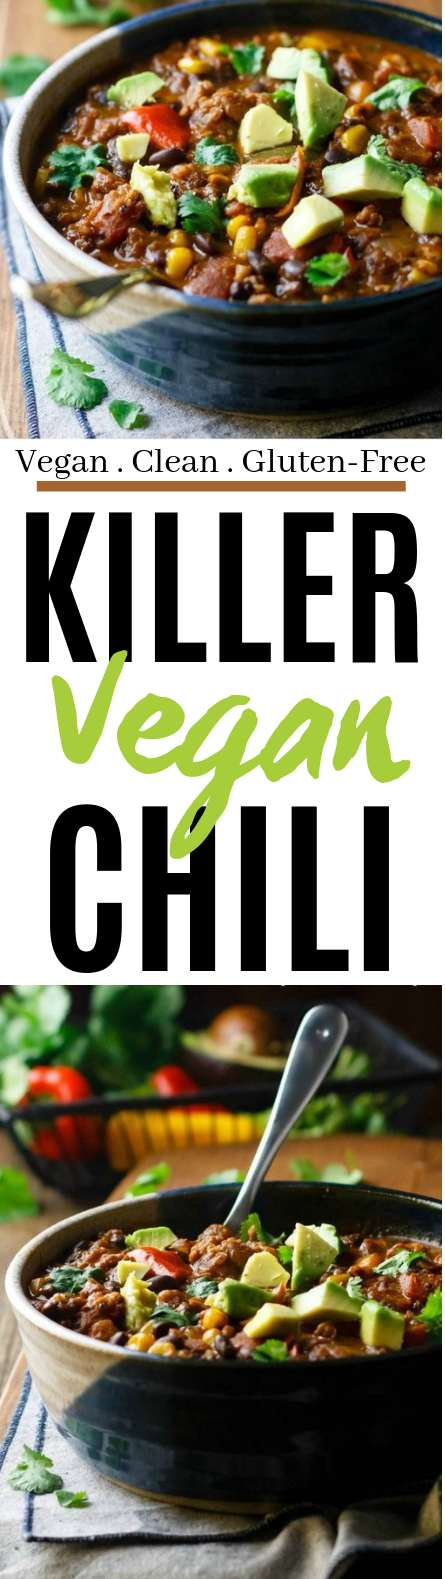 Killer Vegan Chili #vegan #dinner